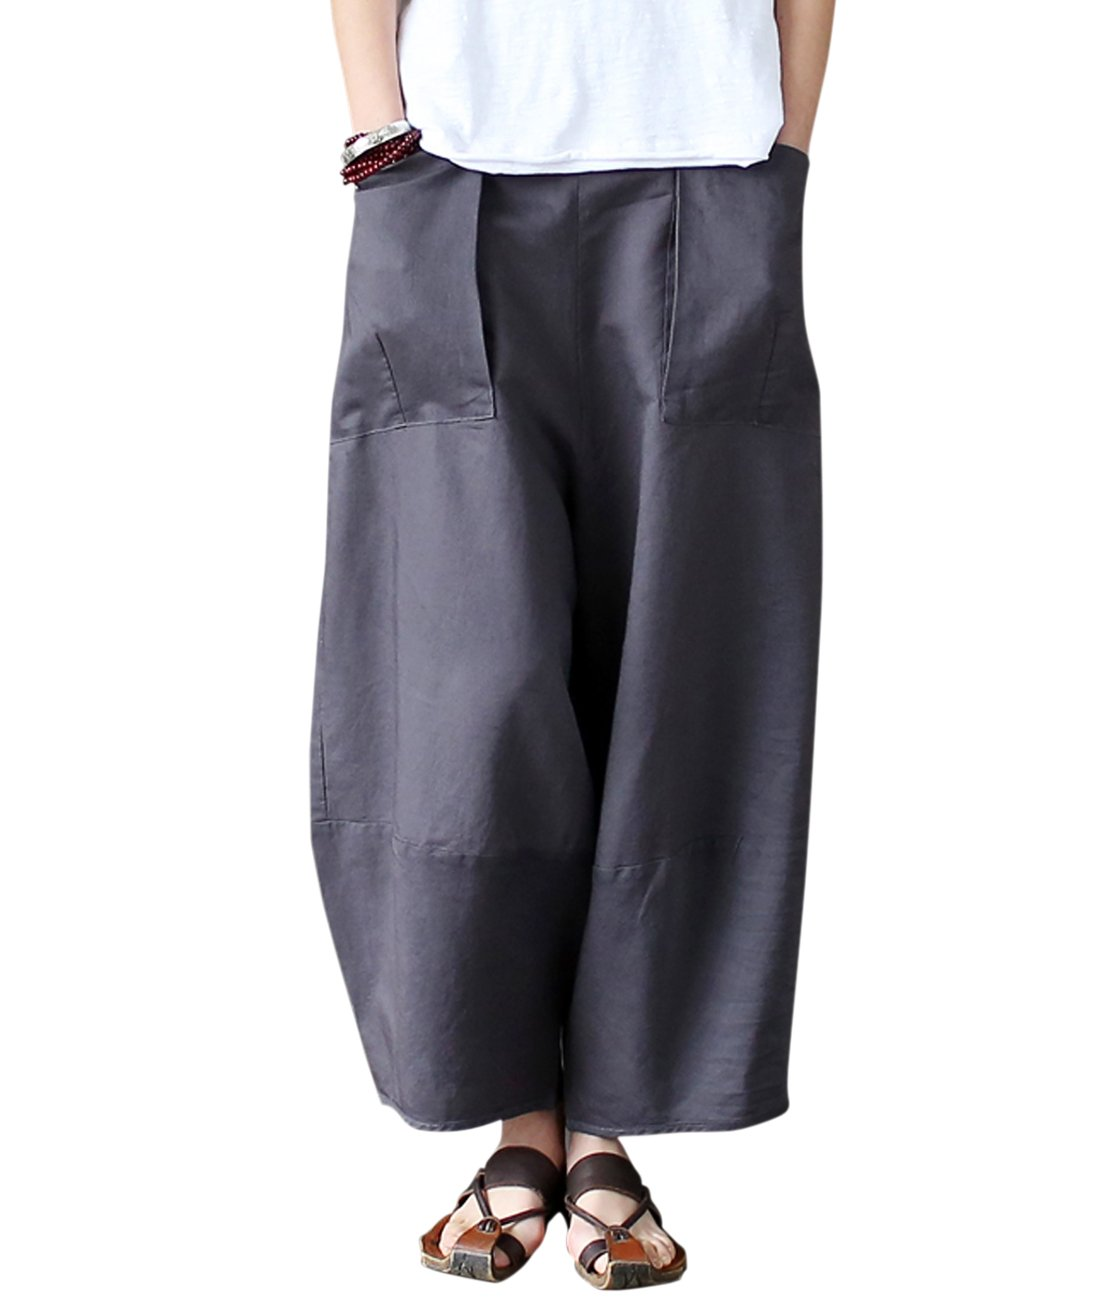 Aeneontrue Women's Patchwork Wide Leg Pants Trousers with Big Pockets Gray S